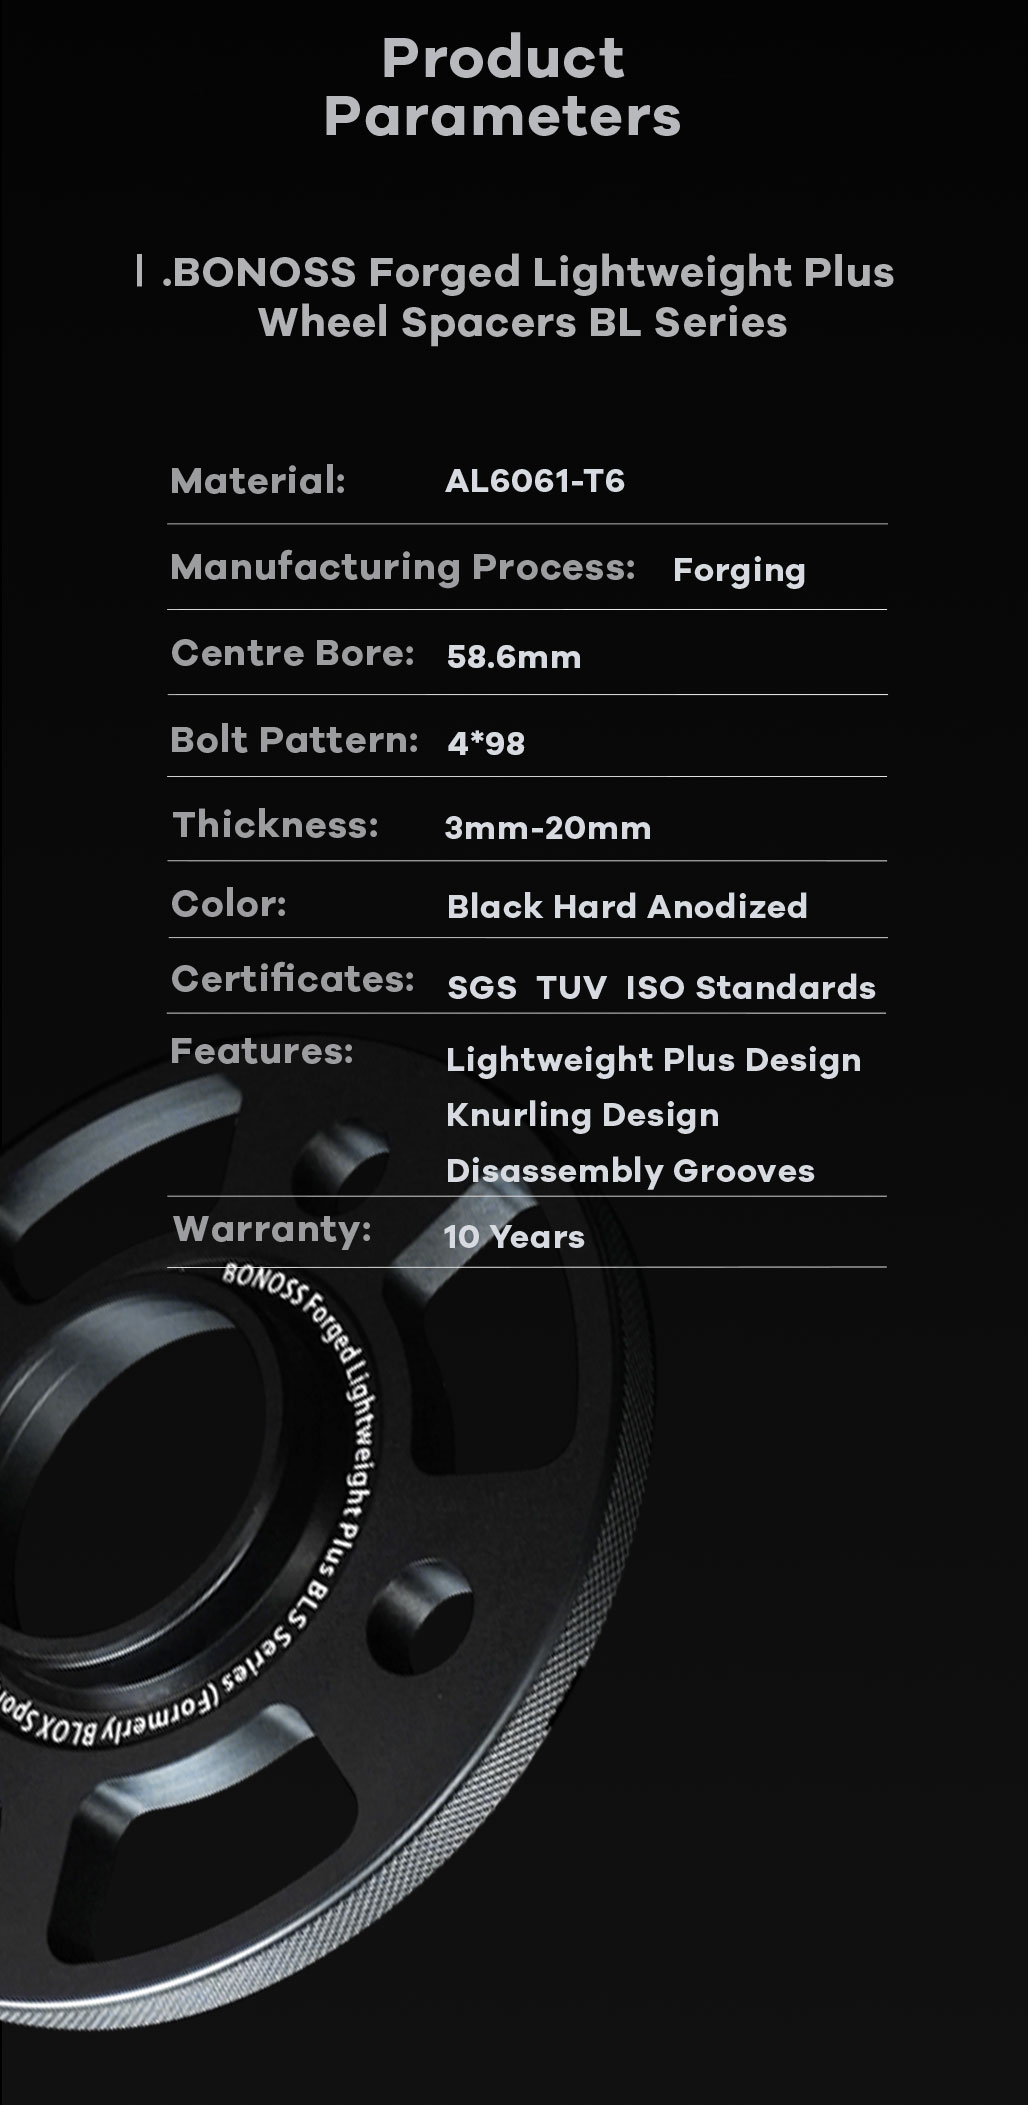 AL6061-T6-BONOSS-forged-lightweight-plus-4x98-58.6-hubcentric-wheel-spacers-by-lulu-9